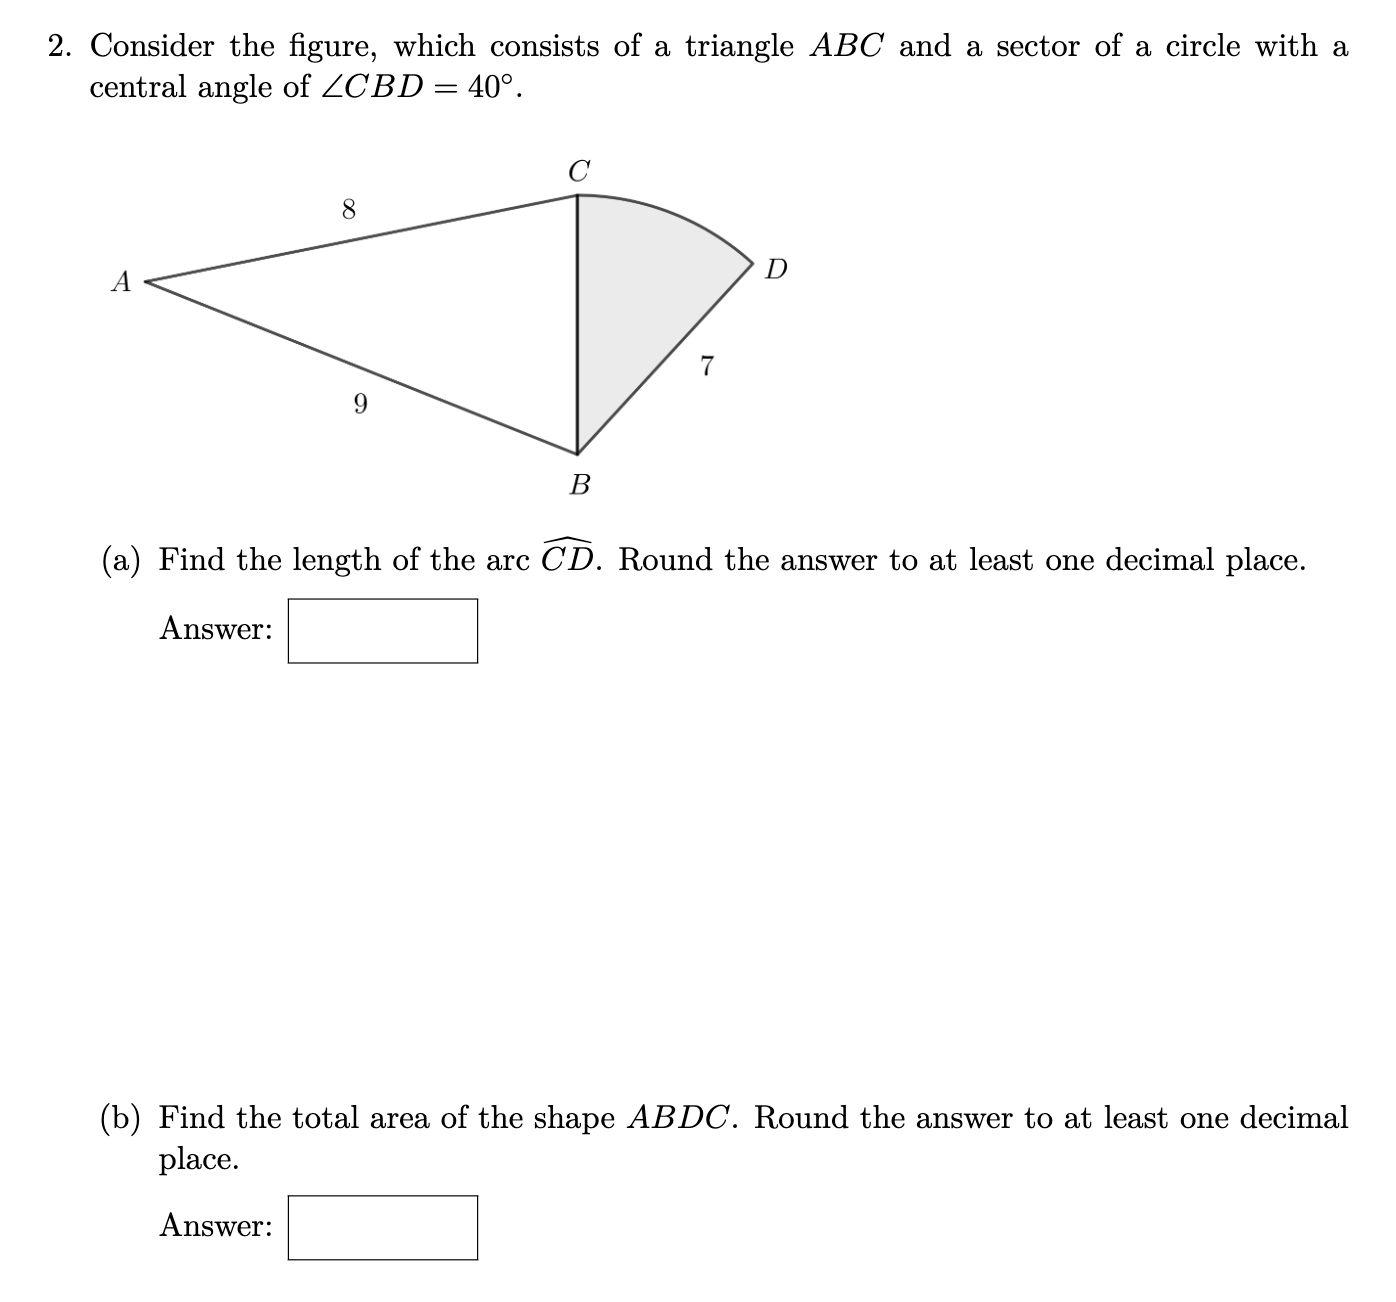 Answered 2 Consider The Figure Which Consists